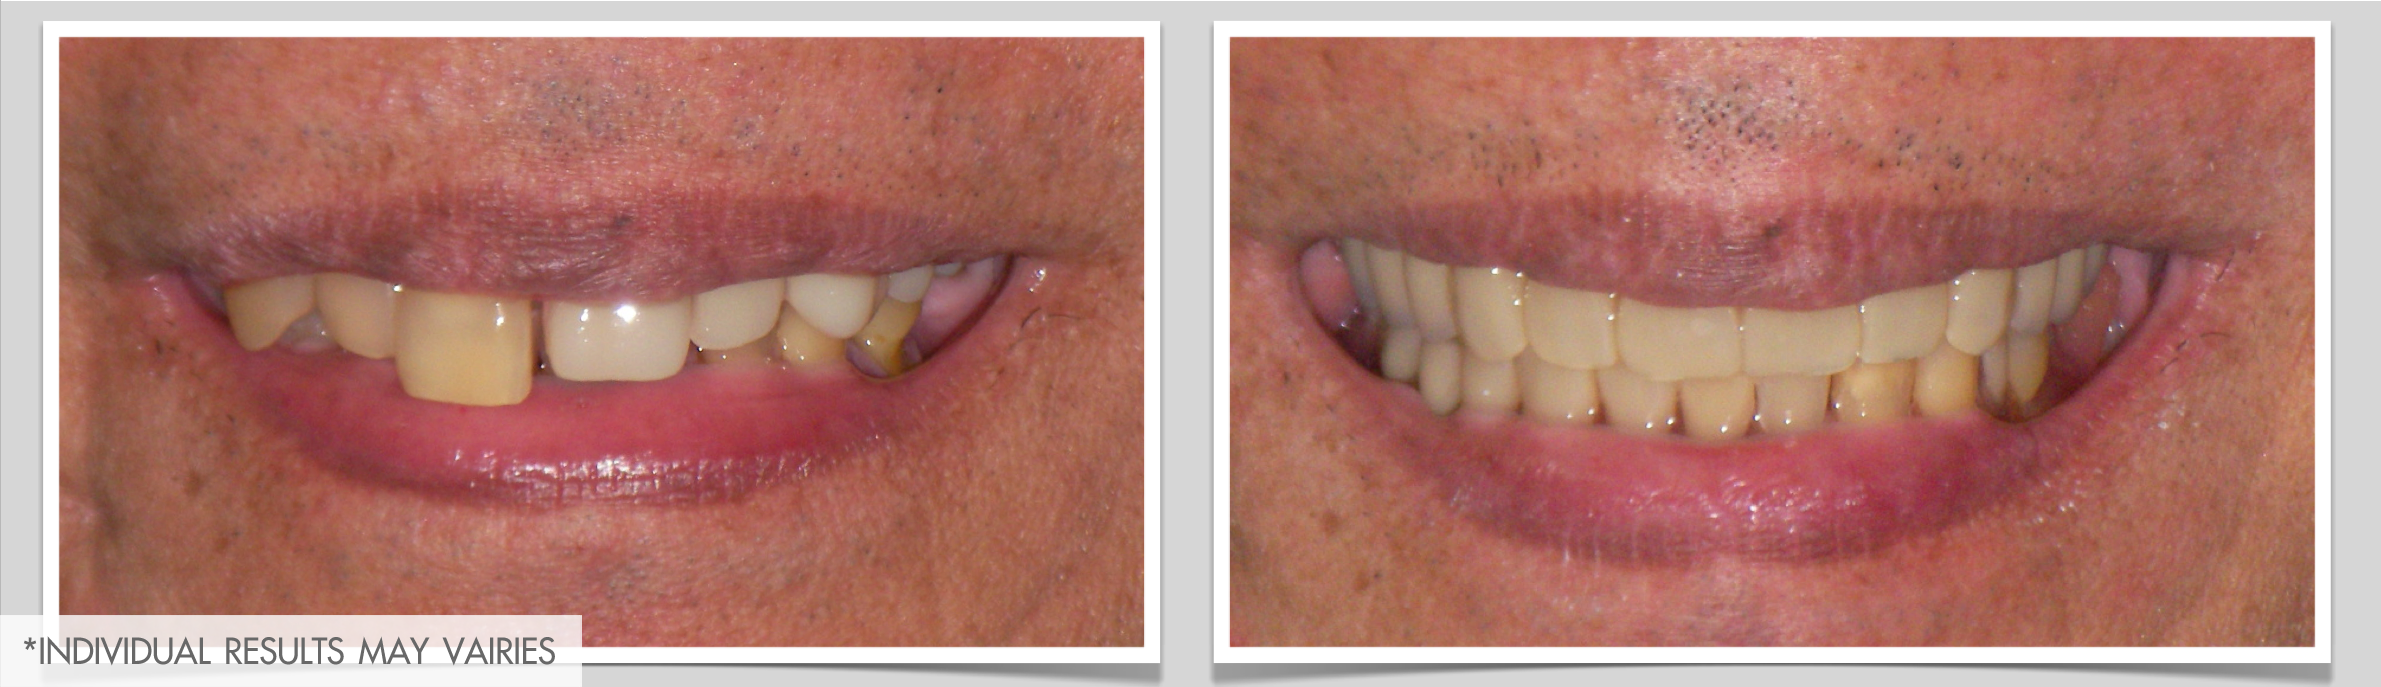 dental removable prothesis Advantages of using dental implants with removable dentures marielaina perrone dds henderson dentist 702-458-2929.